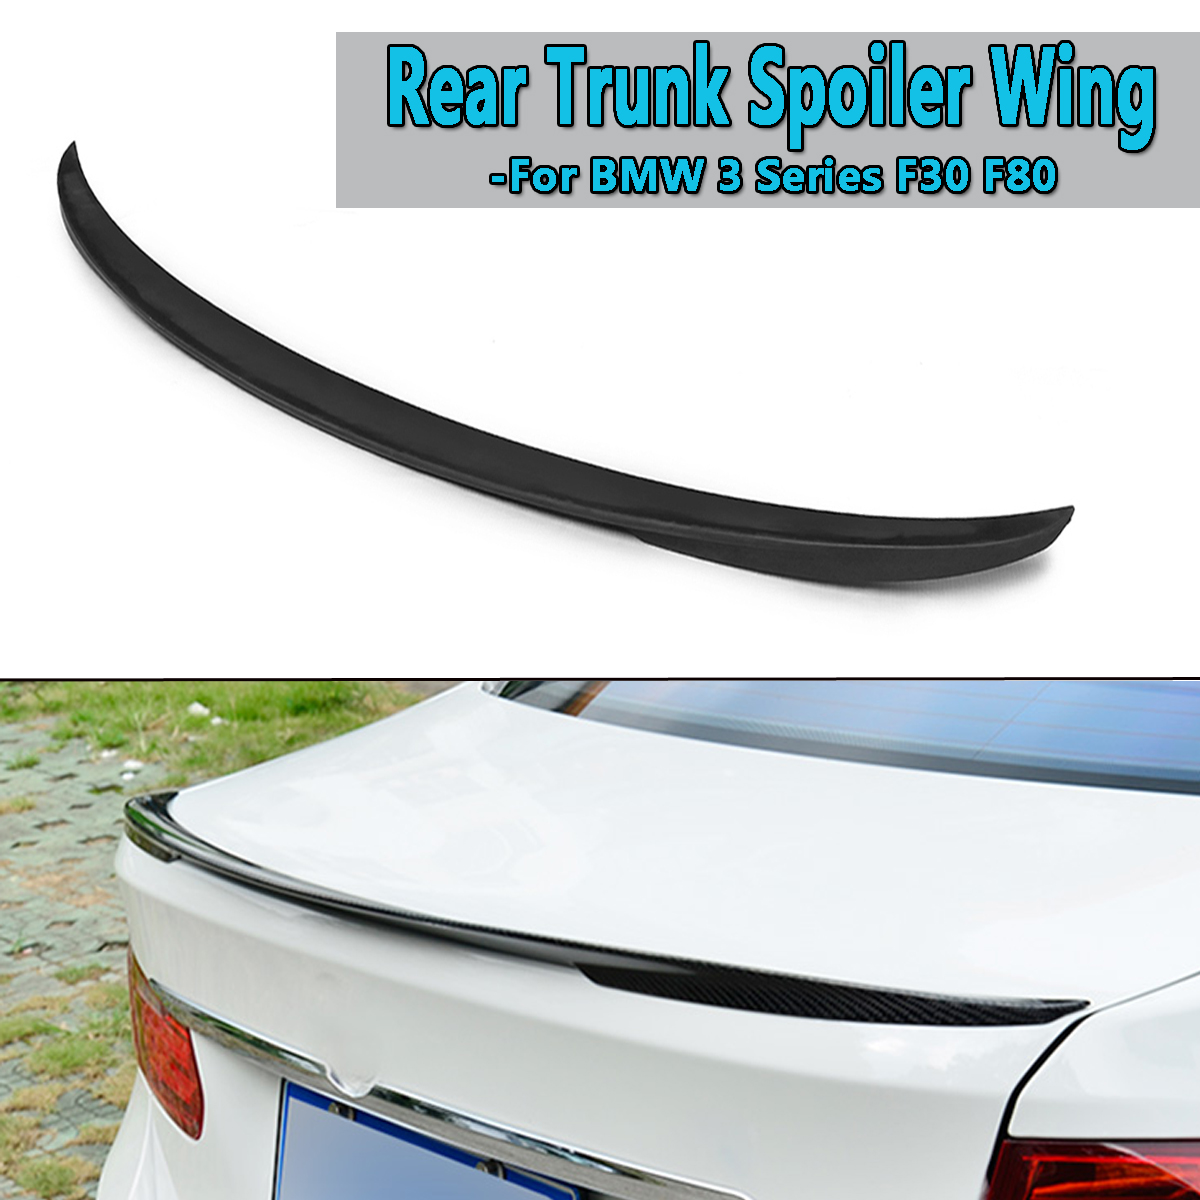 New Car Rear Trunk Spoiler Wing For BMW 3 Series F30 F80 ABS Plastic Black Rear Wing Spoiler Rear Trunk Roof Wing 123cm wing